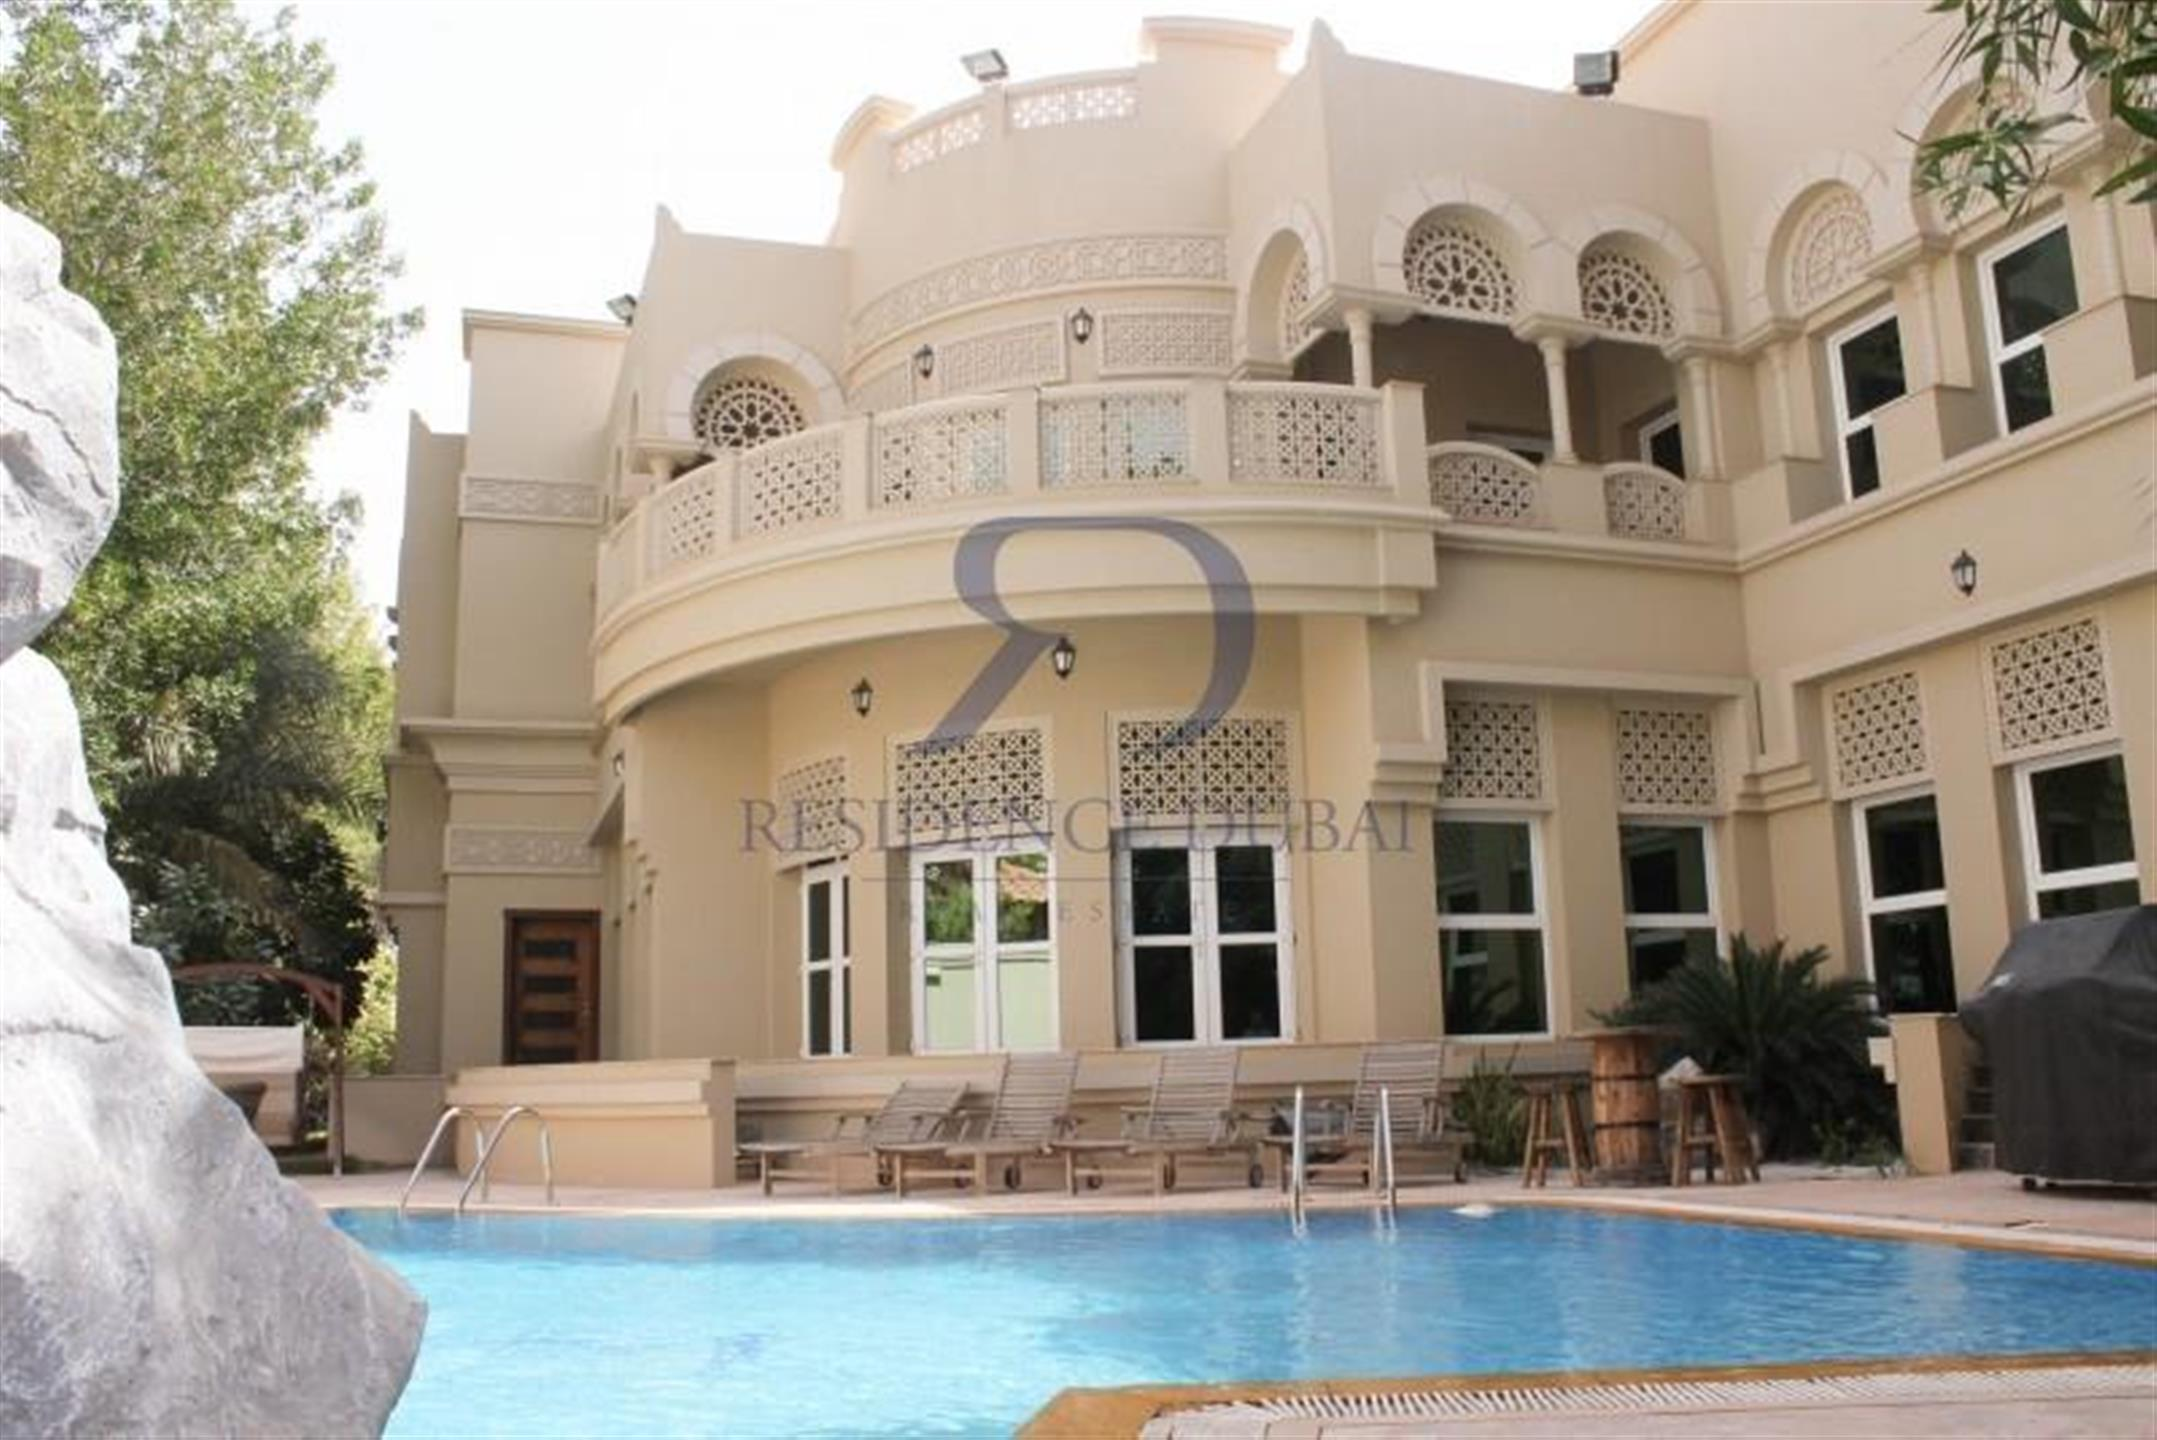 Real estate properties for sale in emirates hills dubai ...